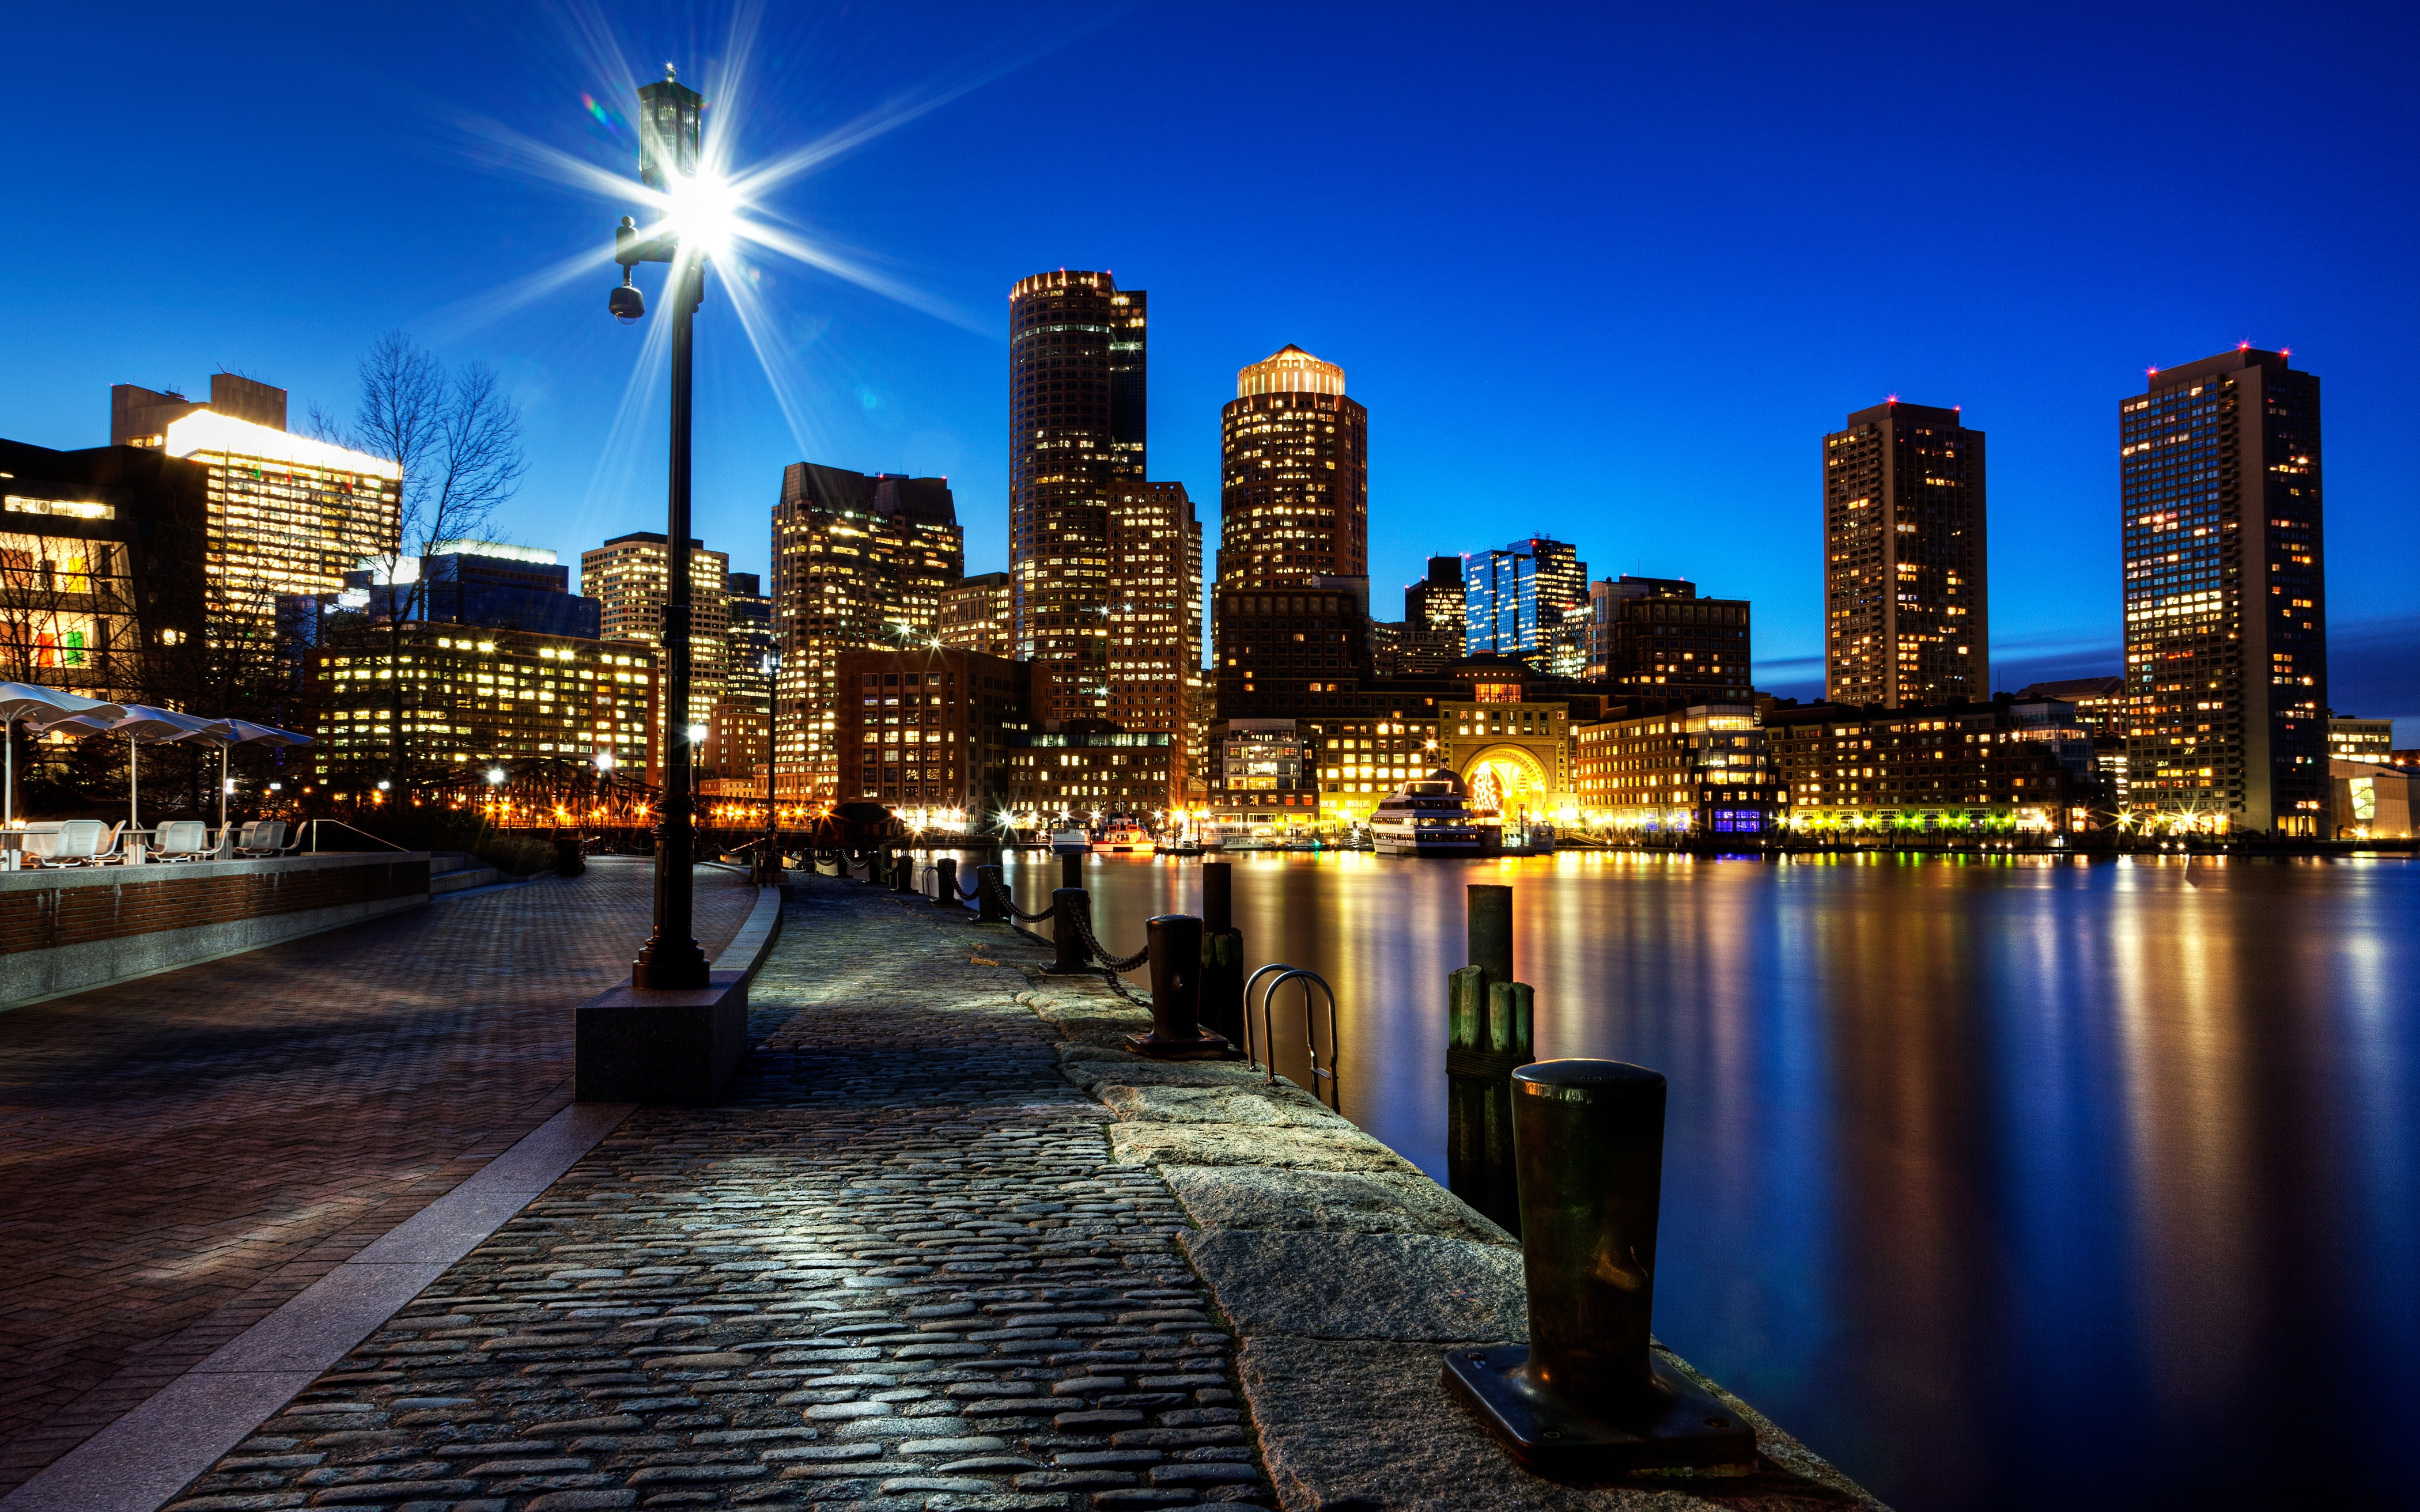 CIMCON Lighting Launches Managed Services Portfolio for Smart Cities